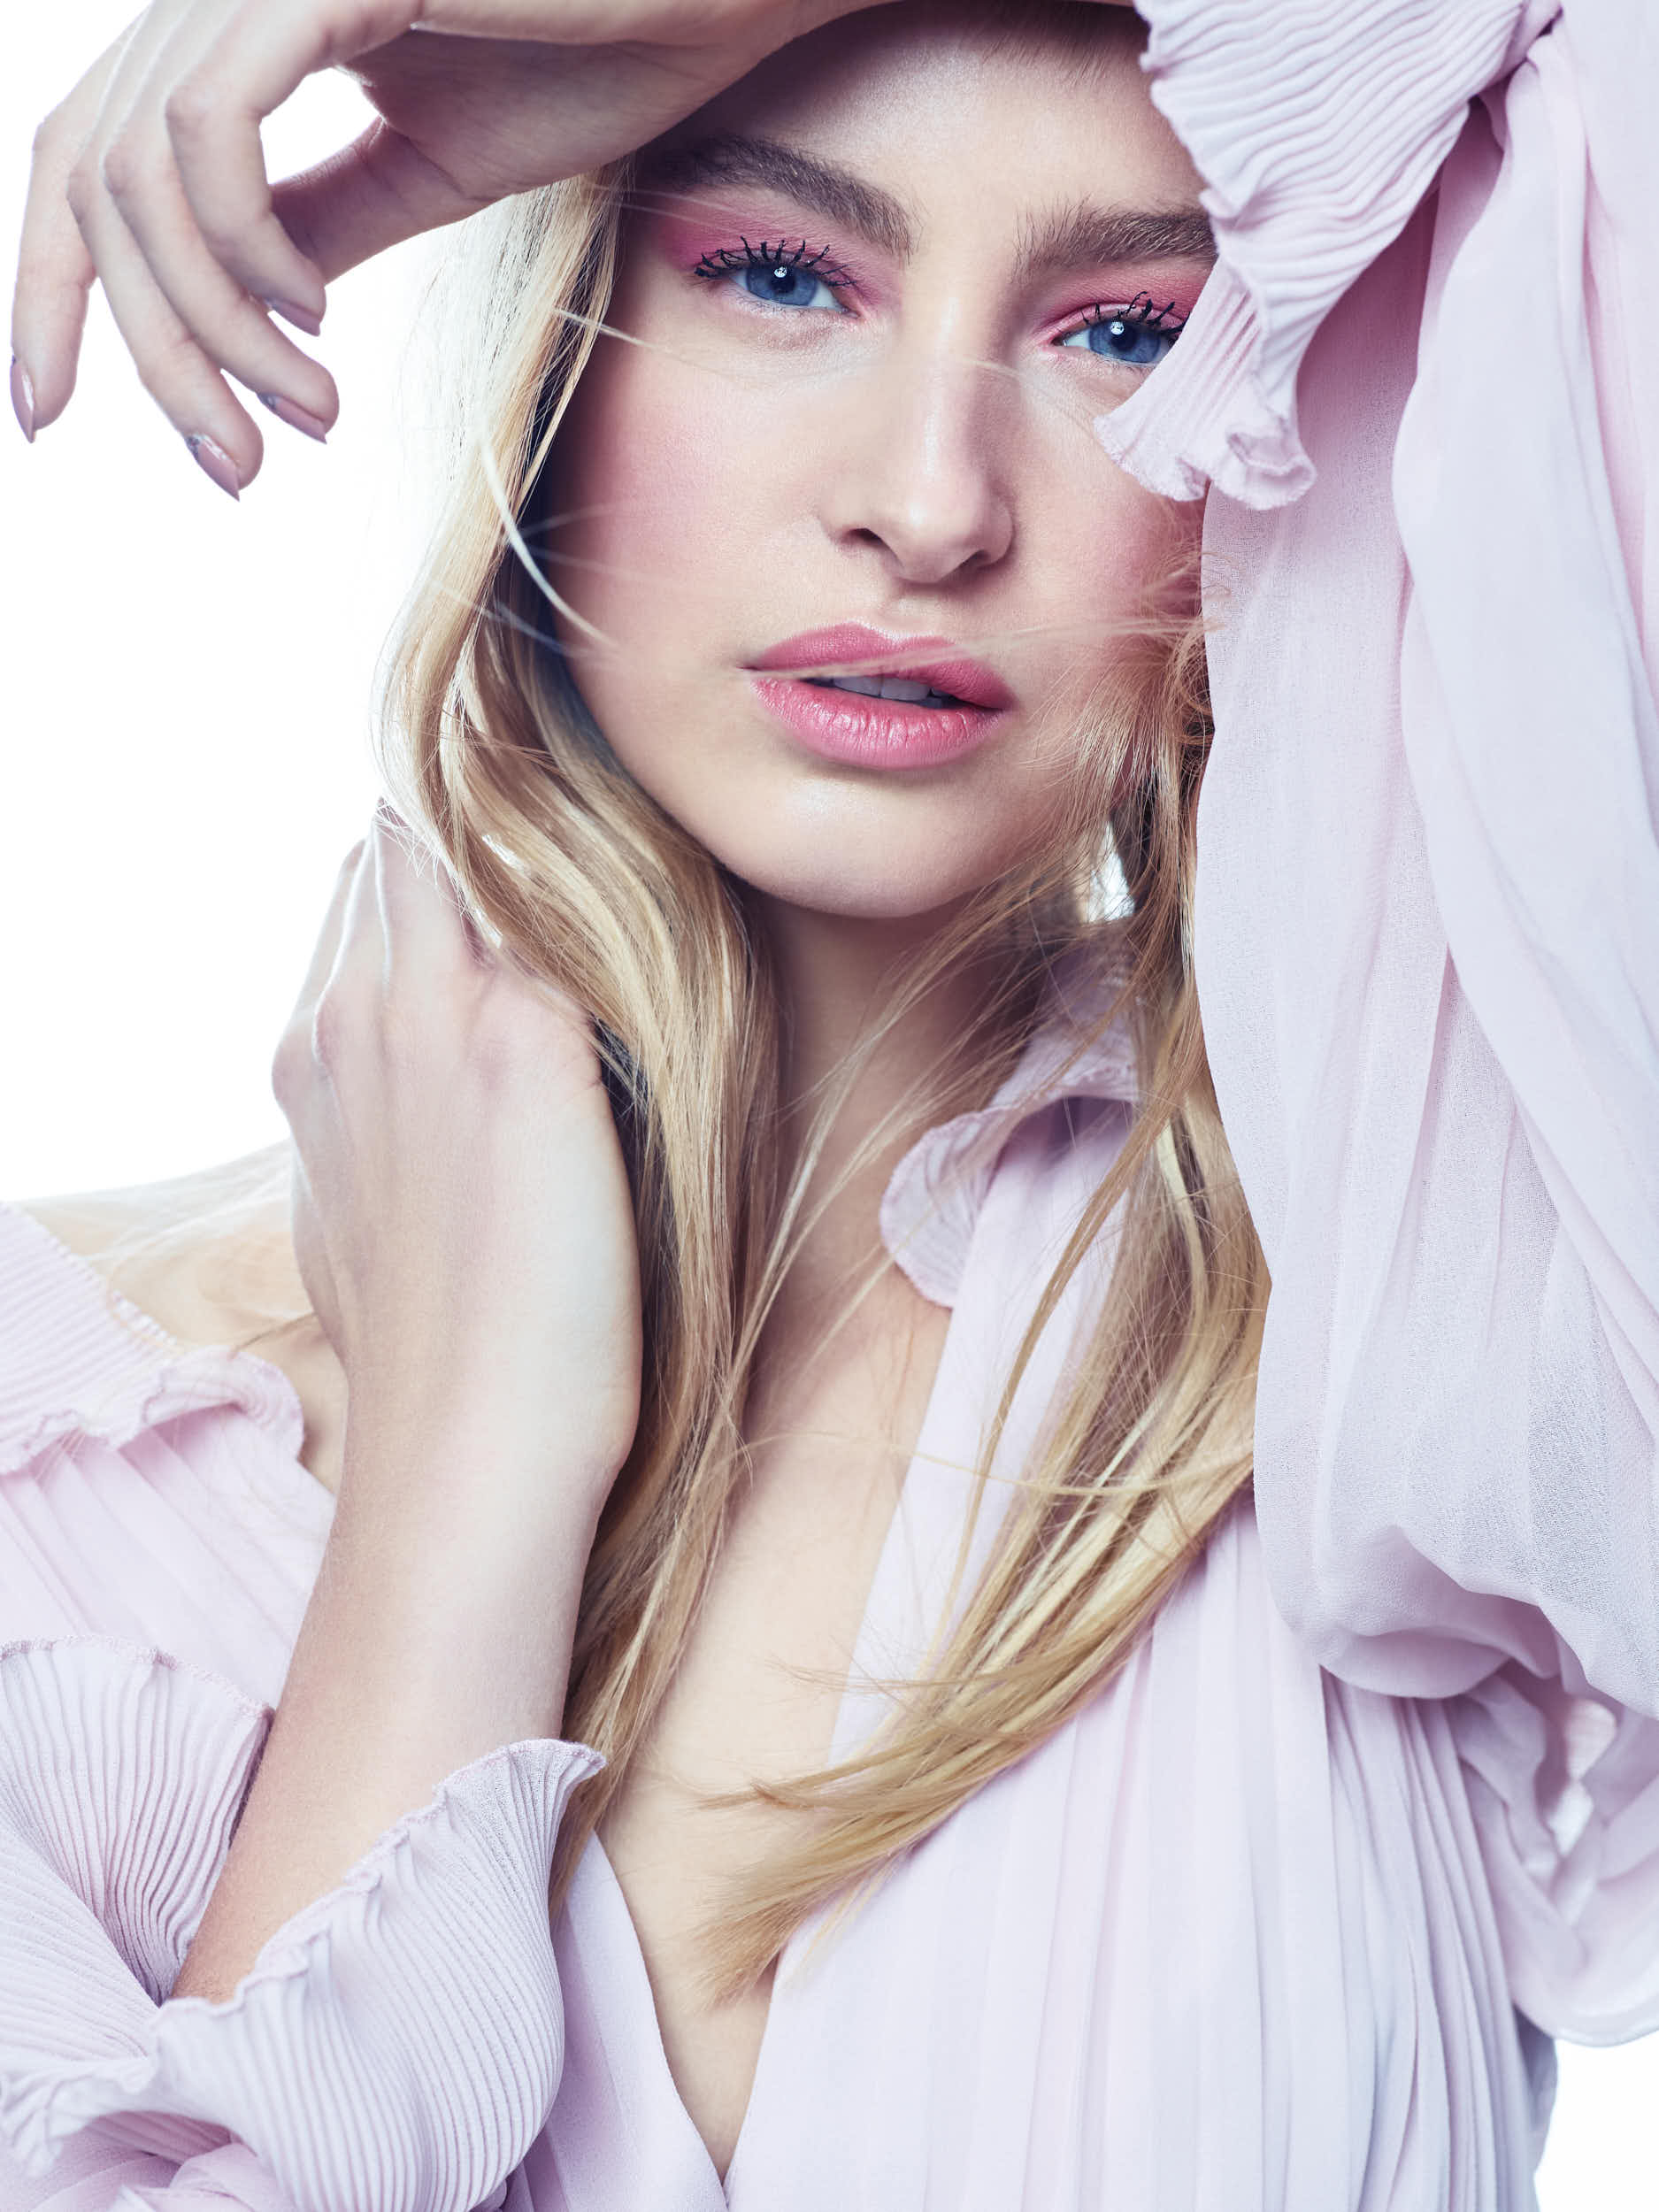 Image_Magazine_Sheer_Beauty_02WebSite.jpg